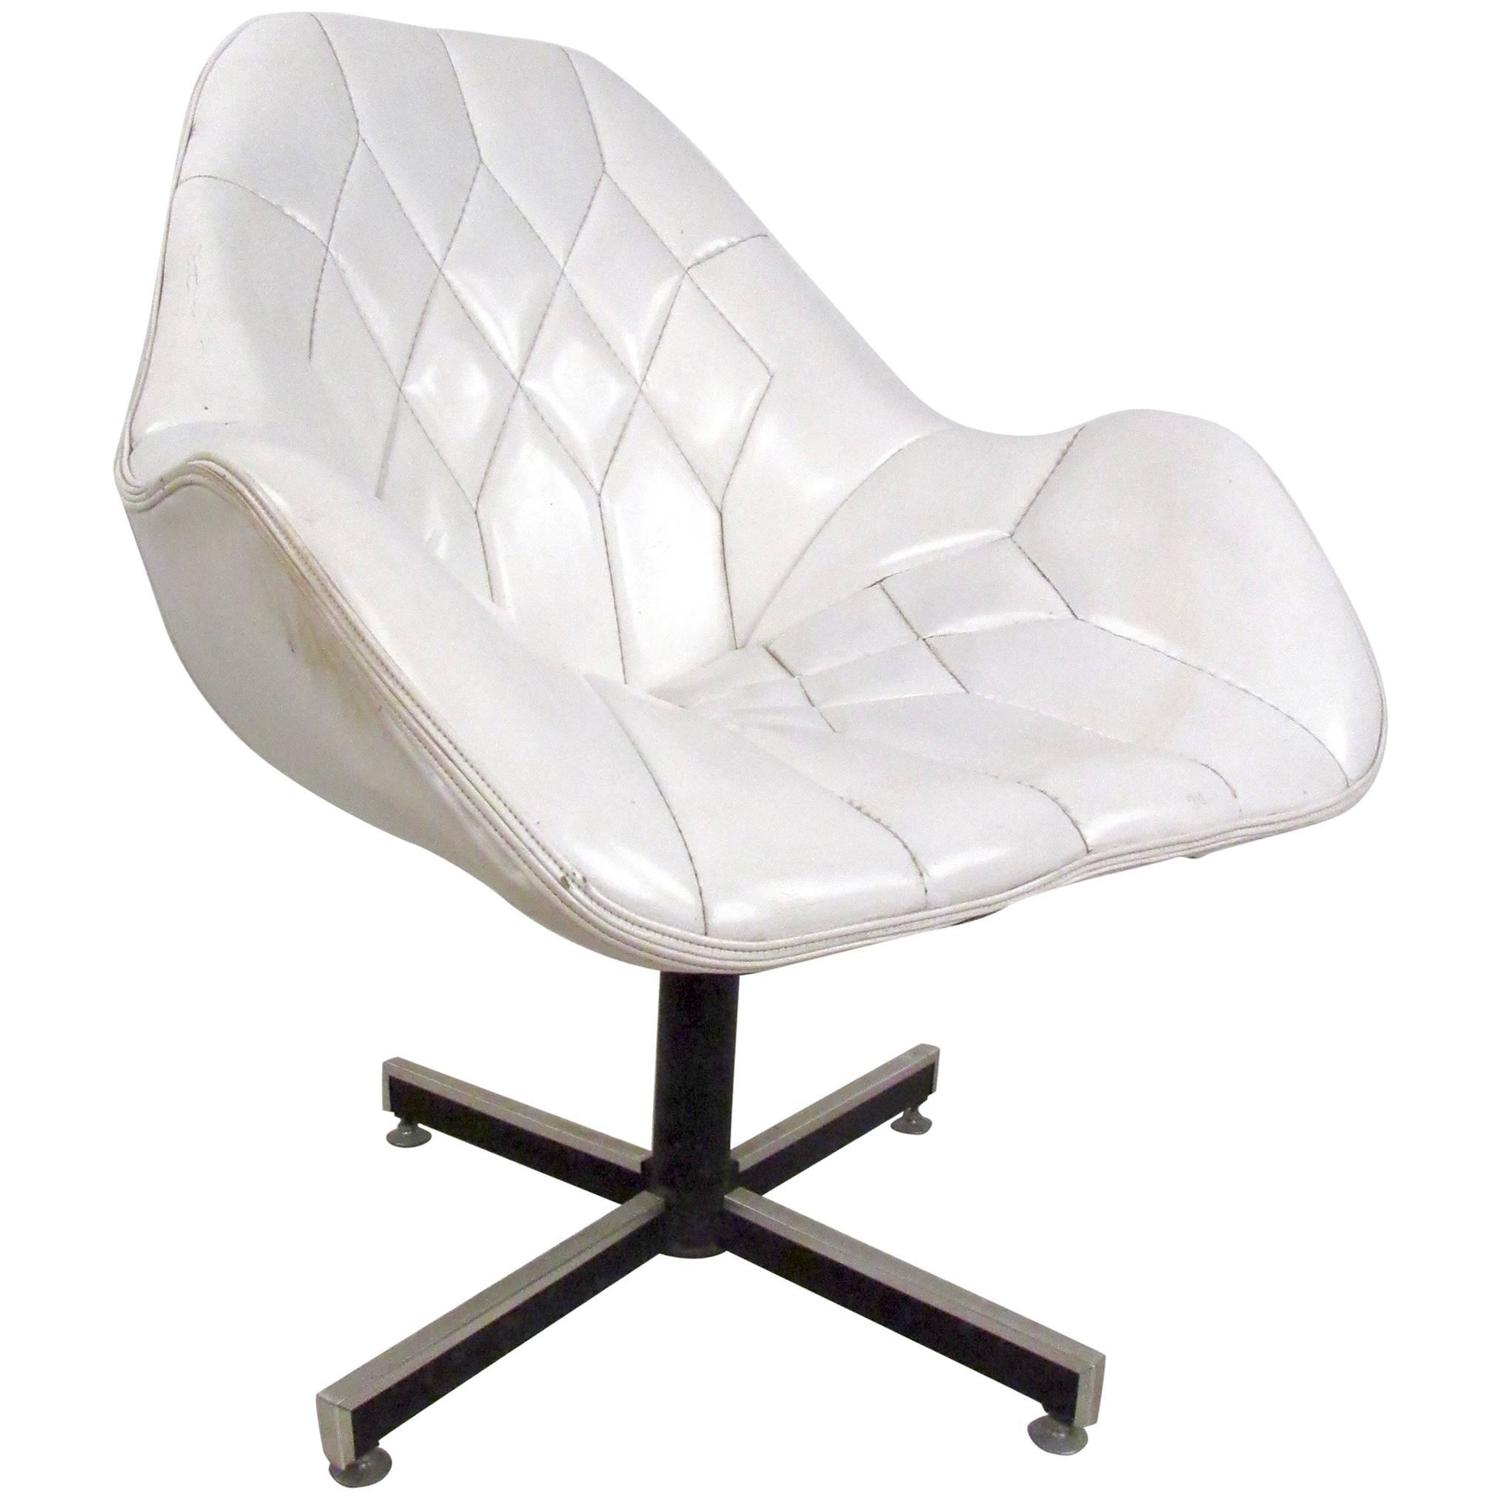 mid century modern tufted swivel lounge chair for sale at 1stdibs. Black Bedroom Furniture Sets. Home Design Ideas